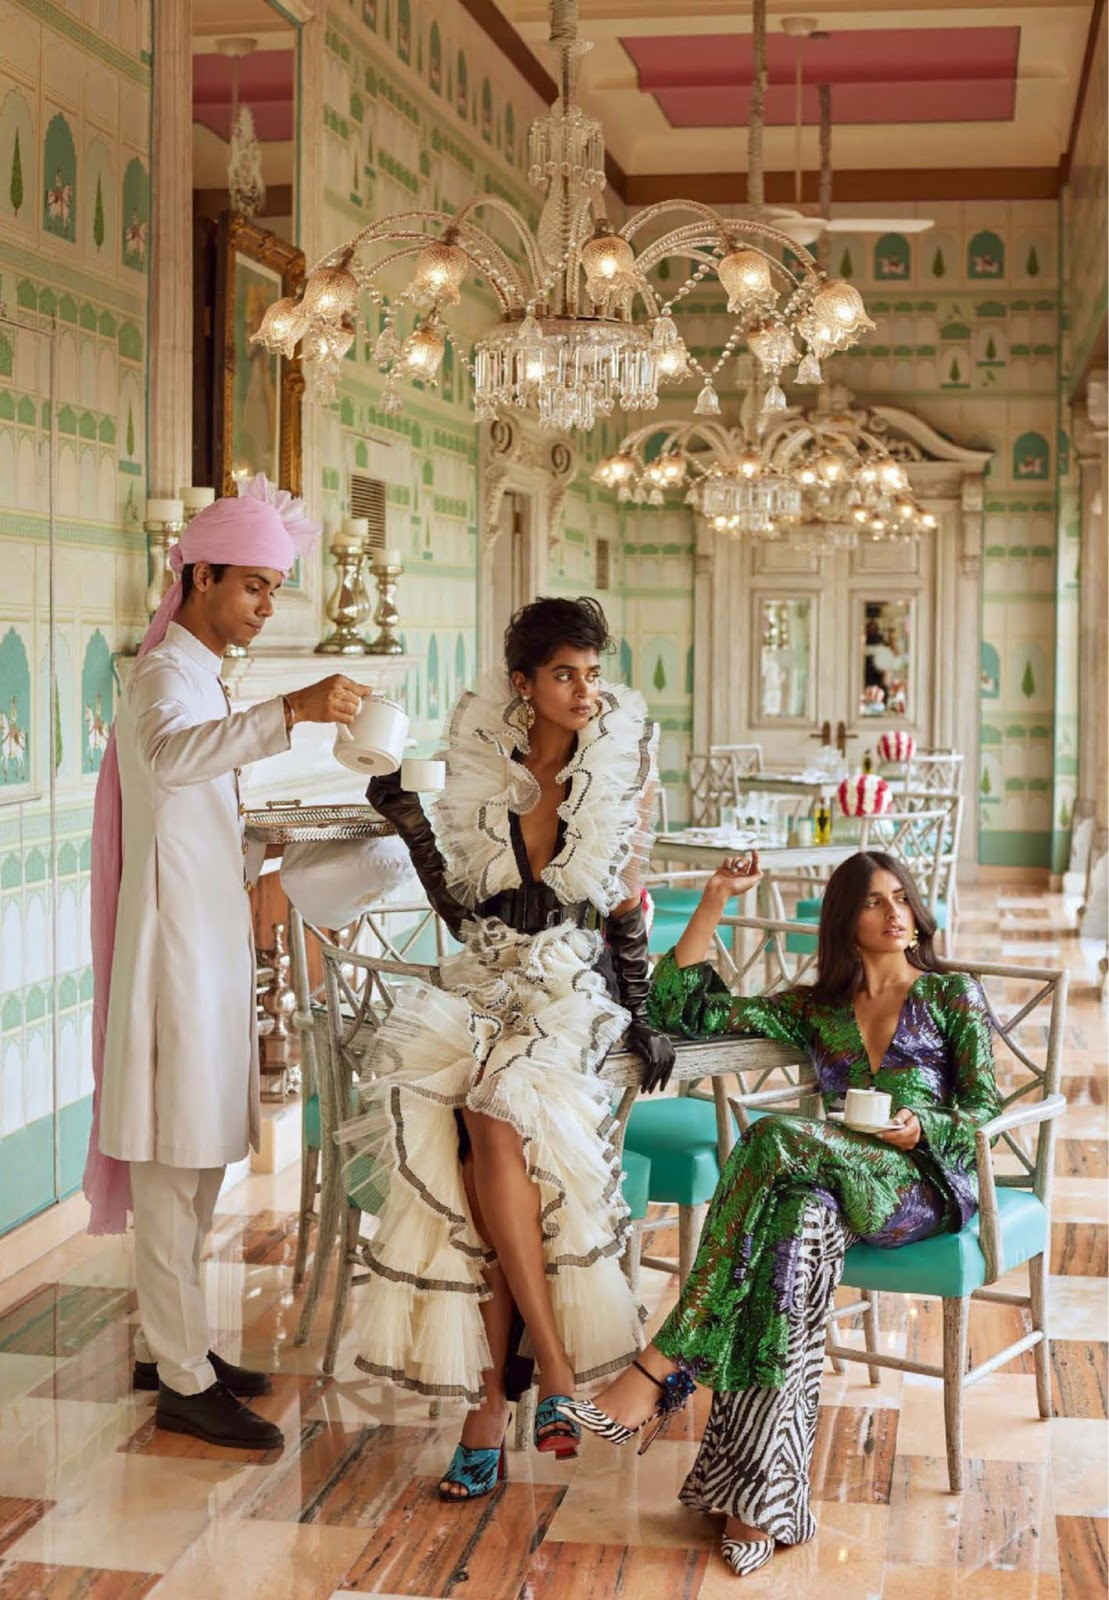 Vadher & Nair by Greg Swales for Vogue India Sept 2018 (13).jpg